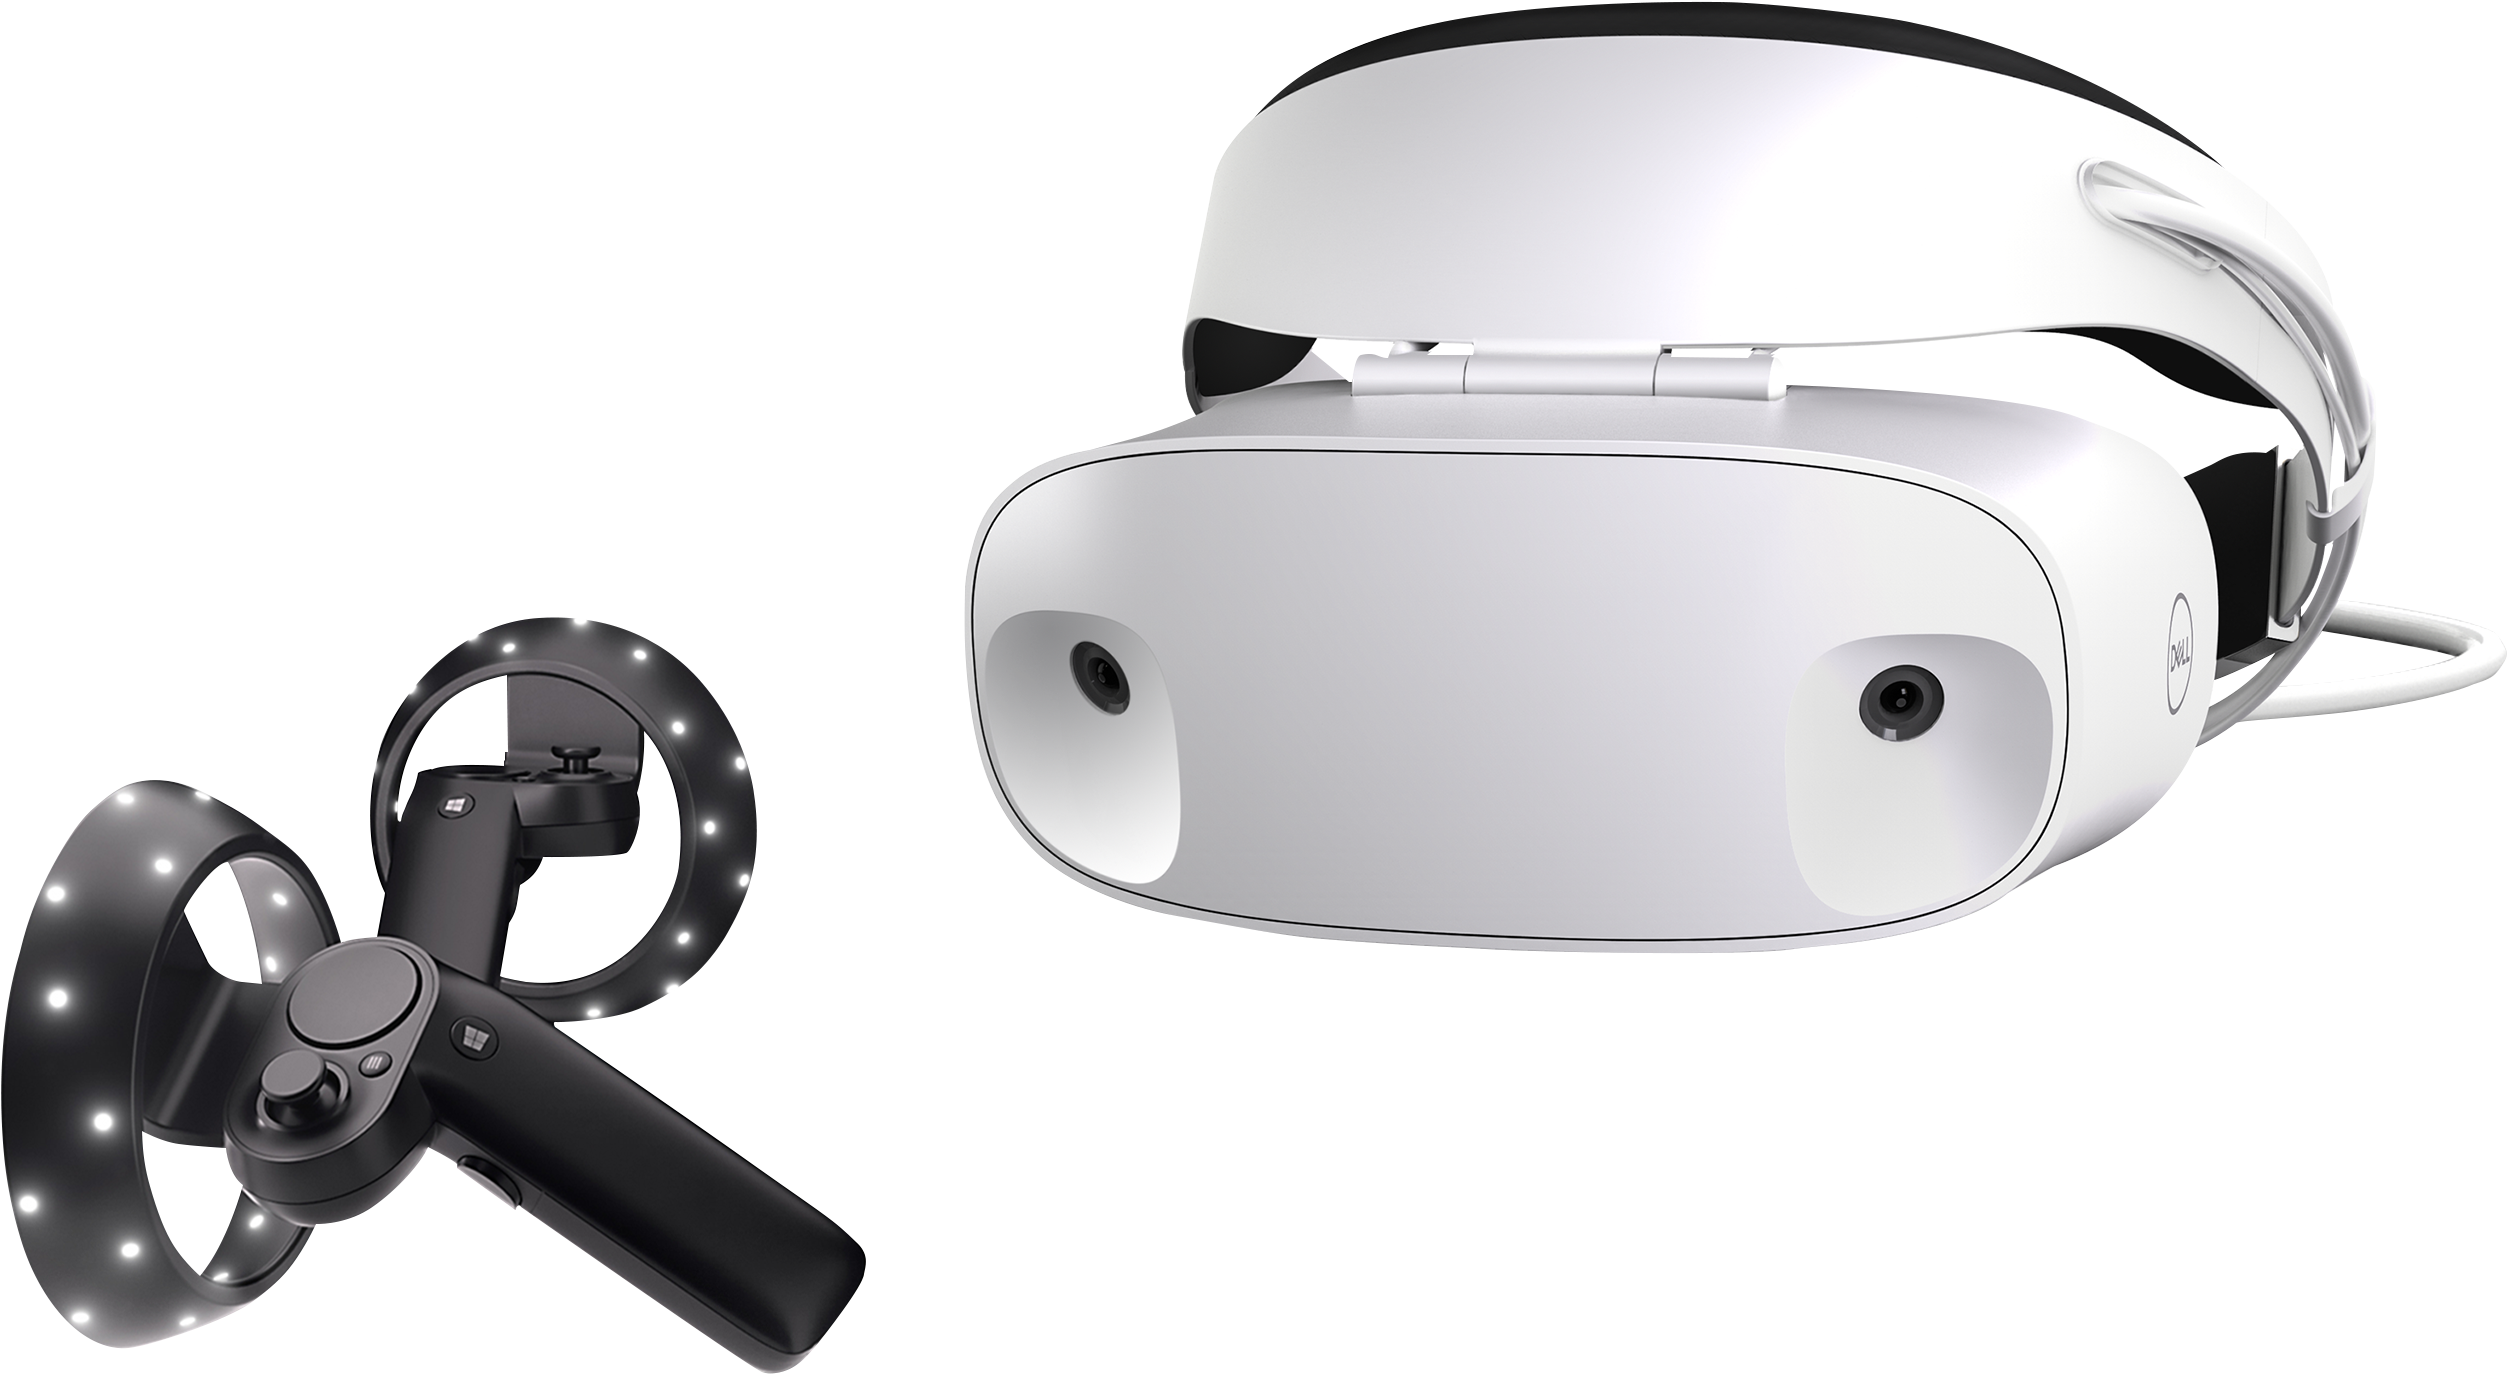 Dell Visor Windows Mixed Reality-Headset mit Motion-Controllers